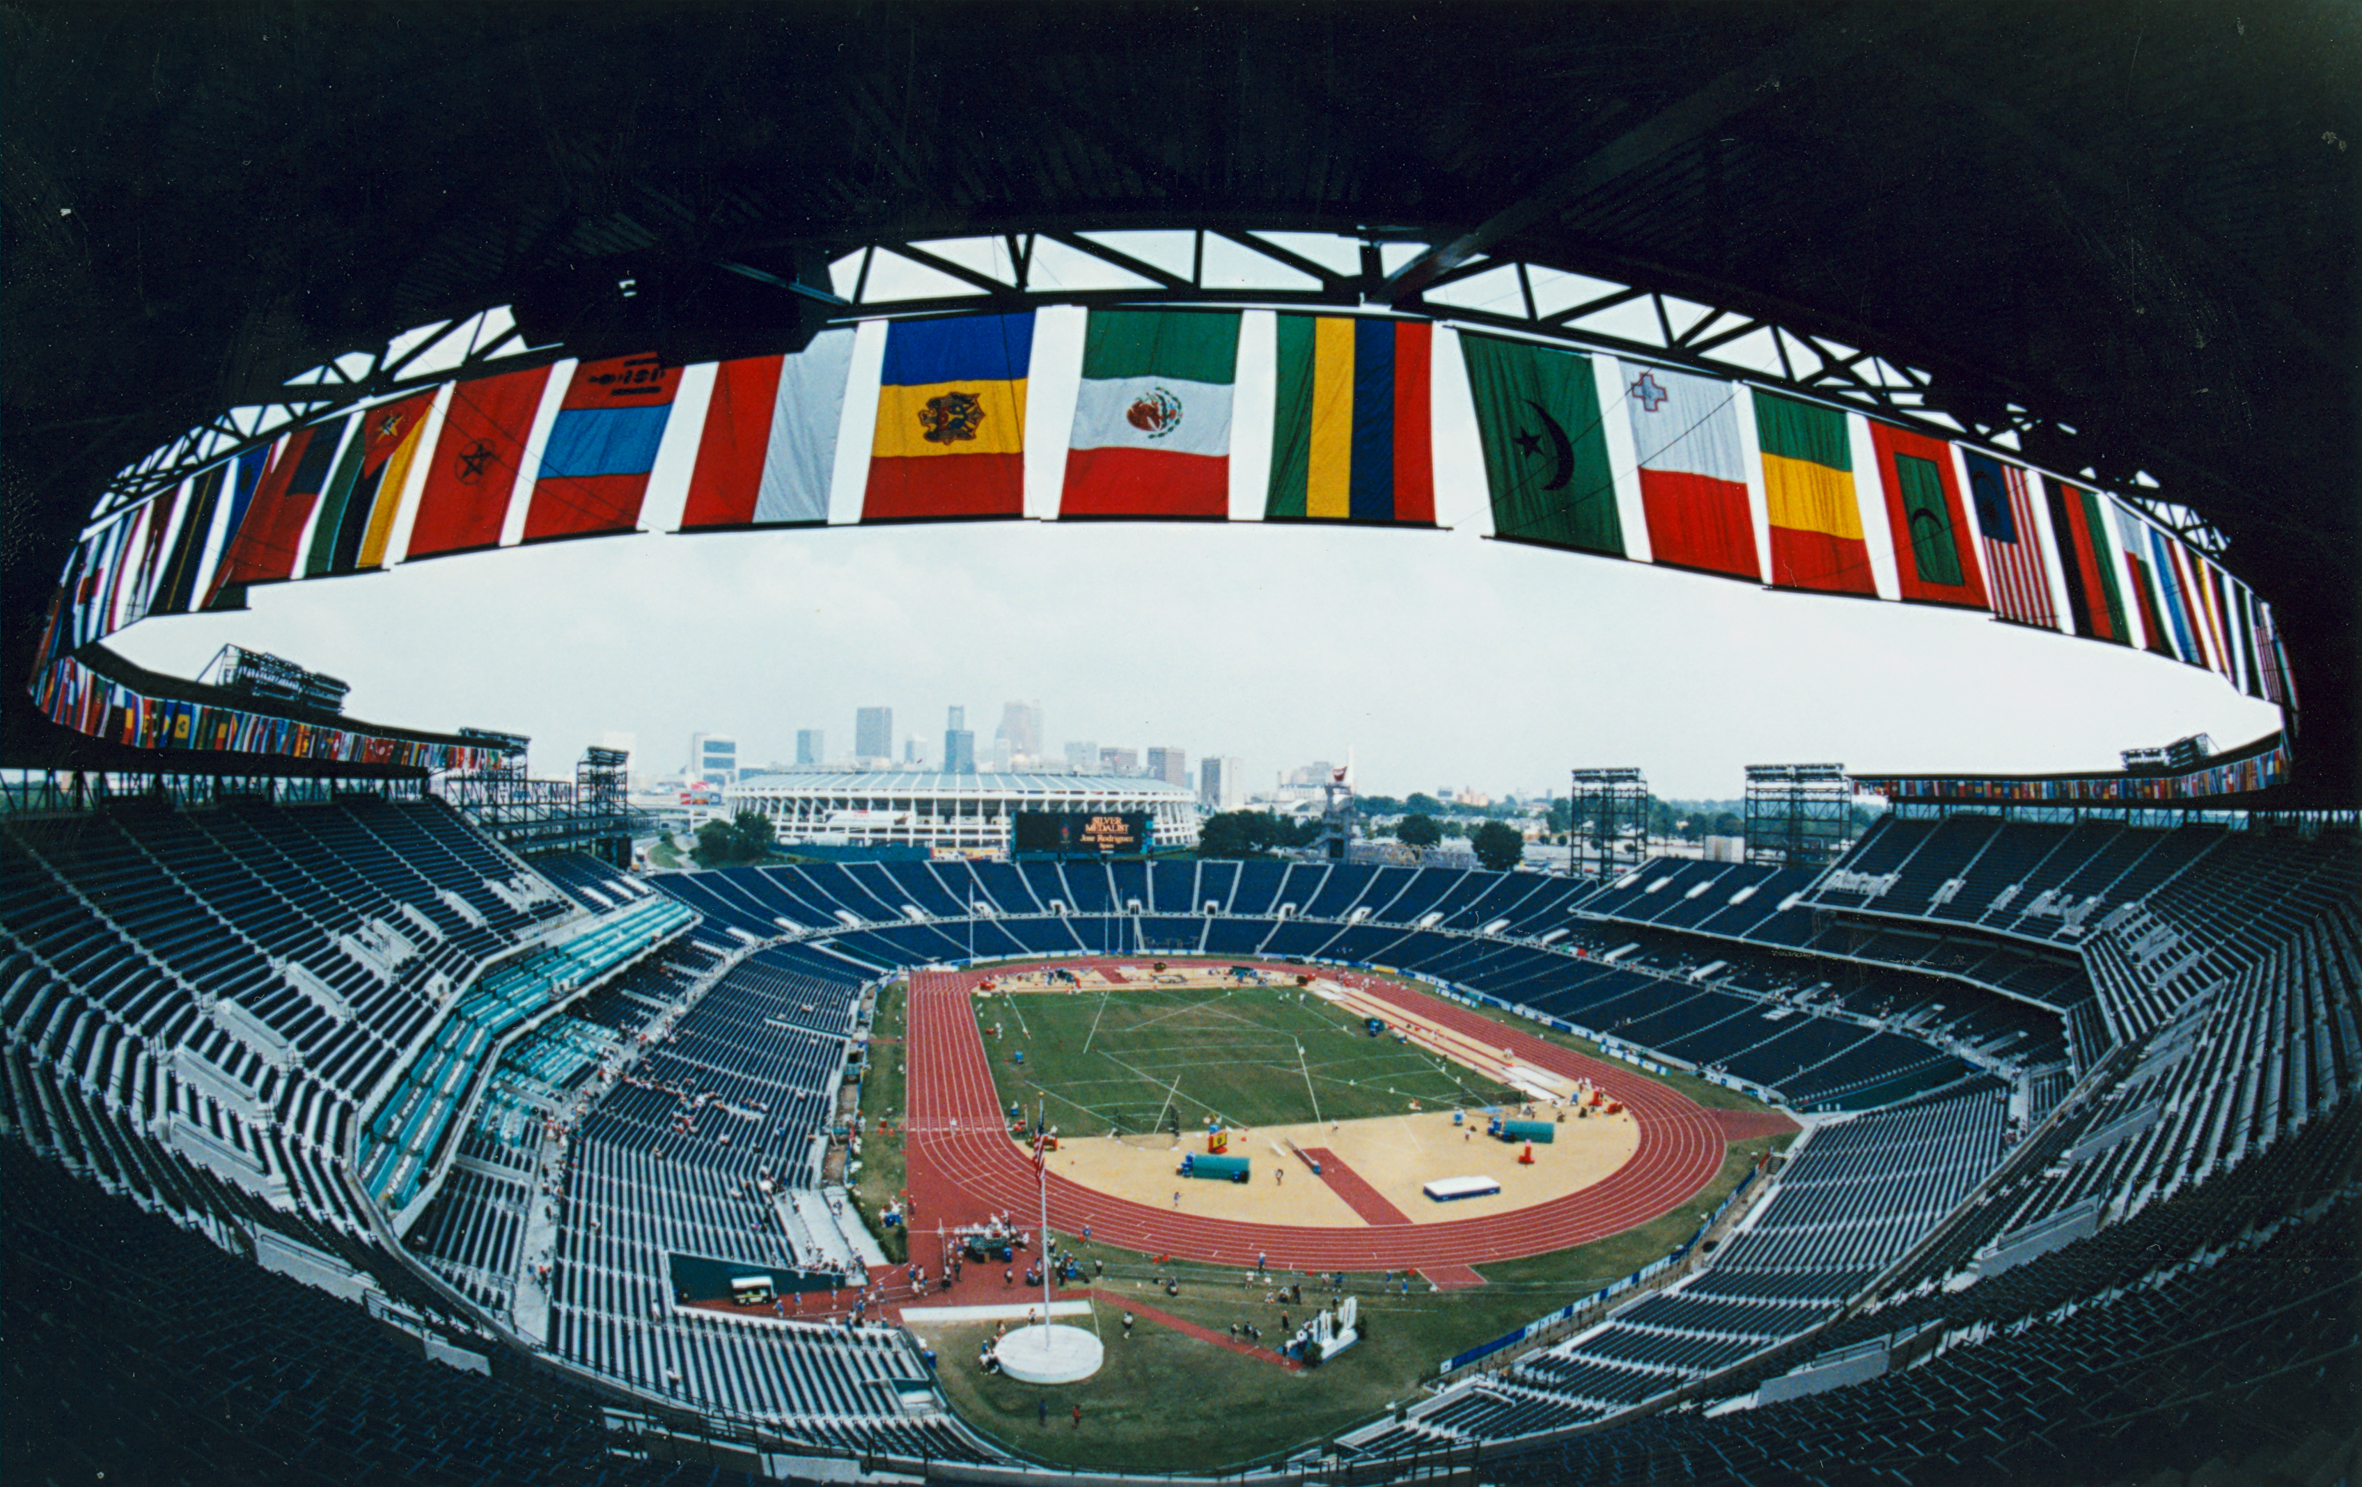 A picture of the Centennial Olympic Stadium